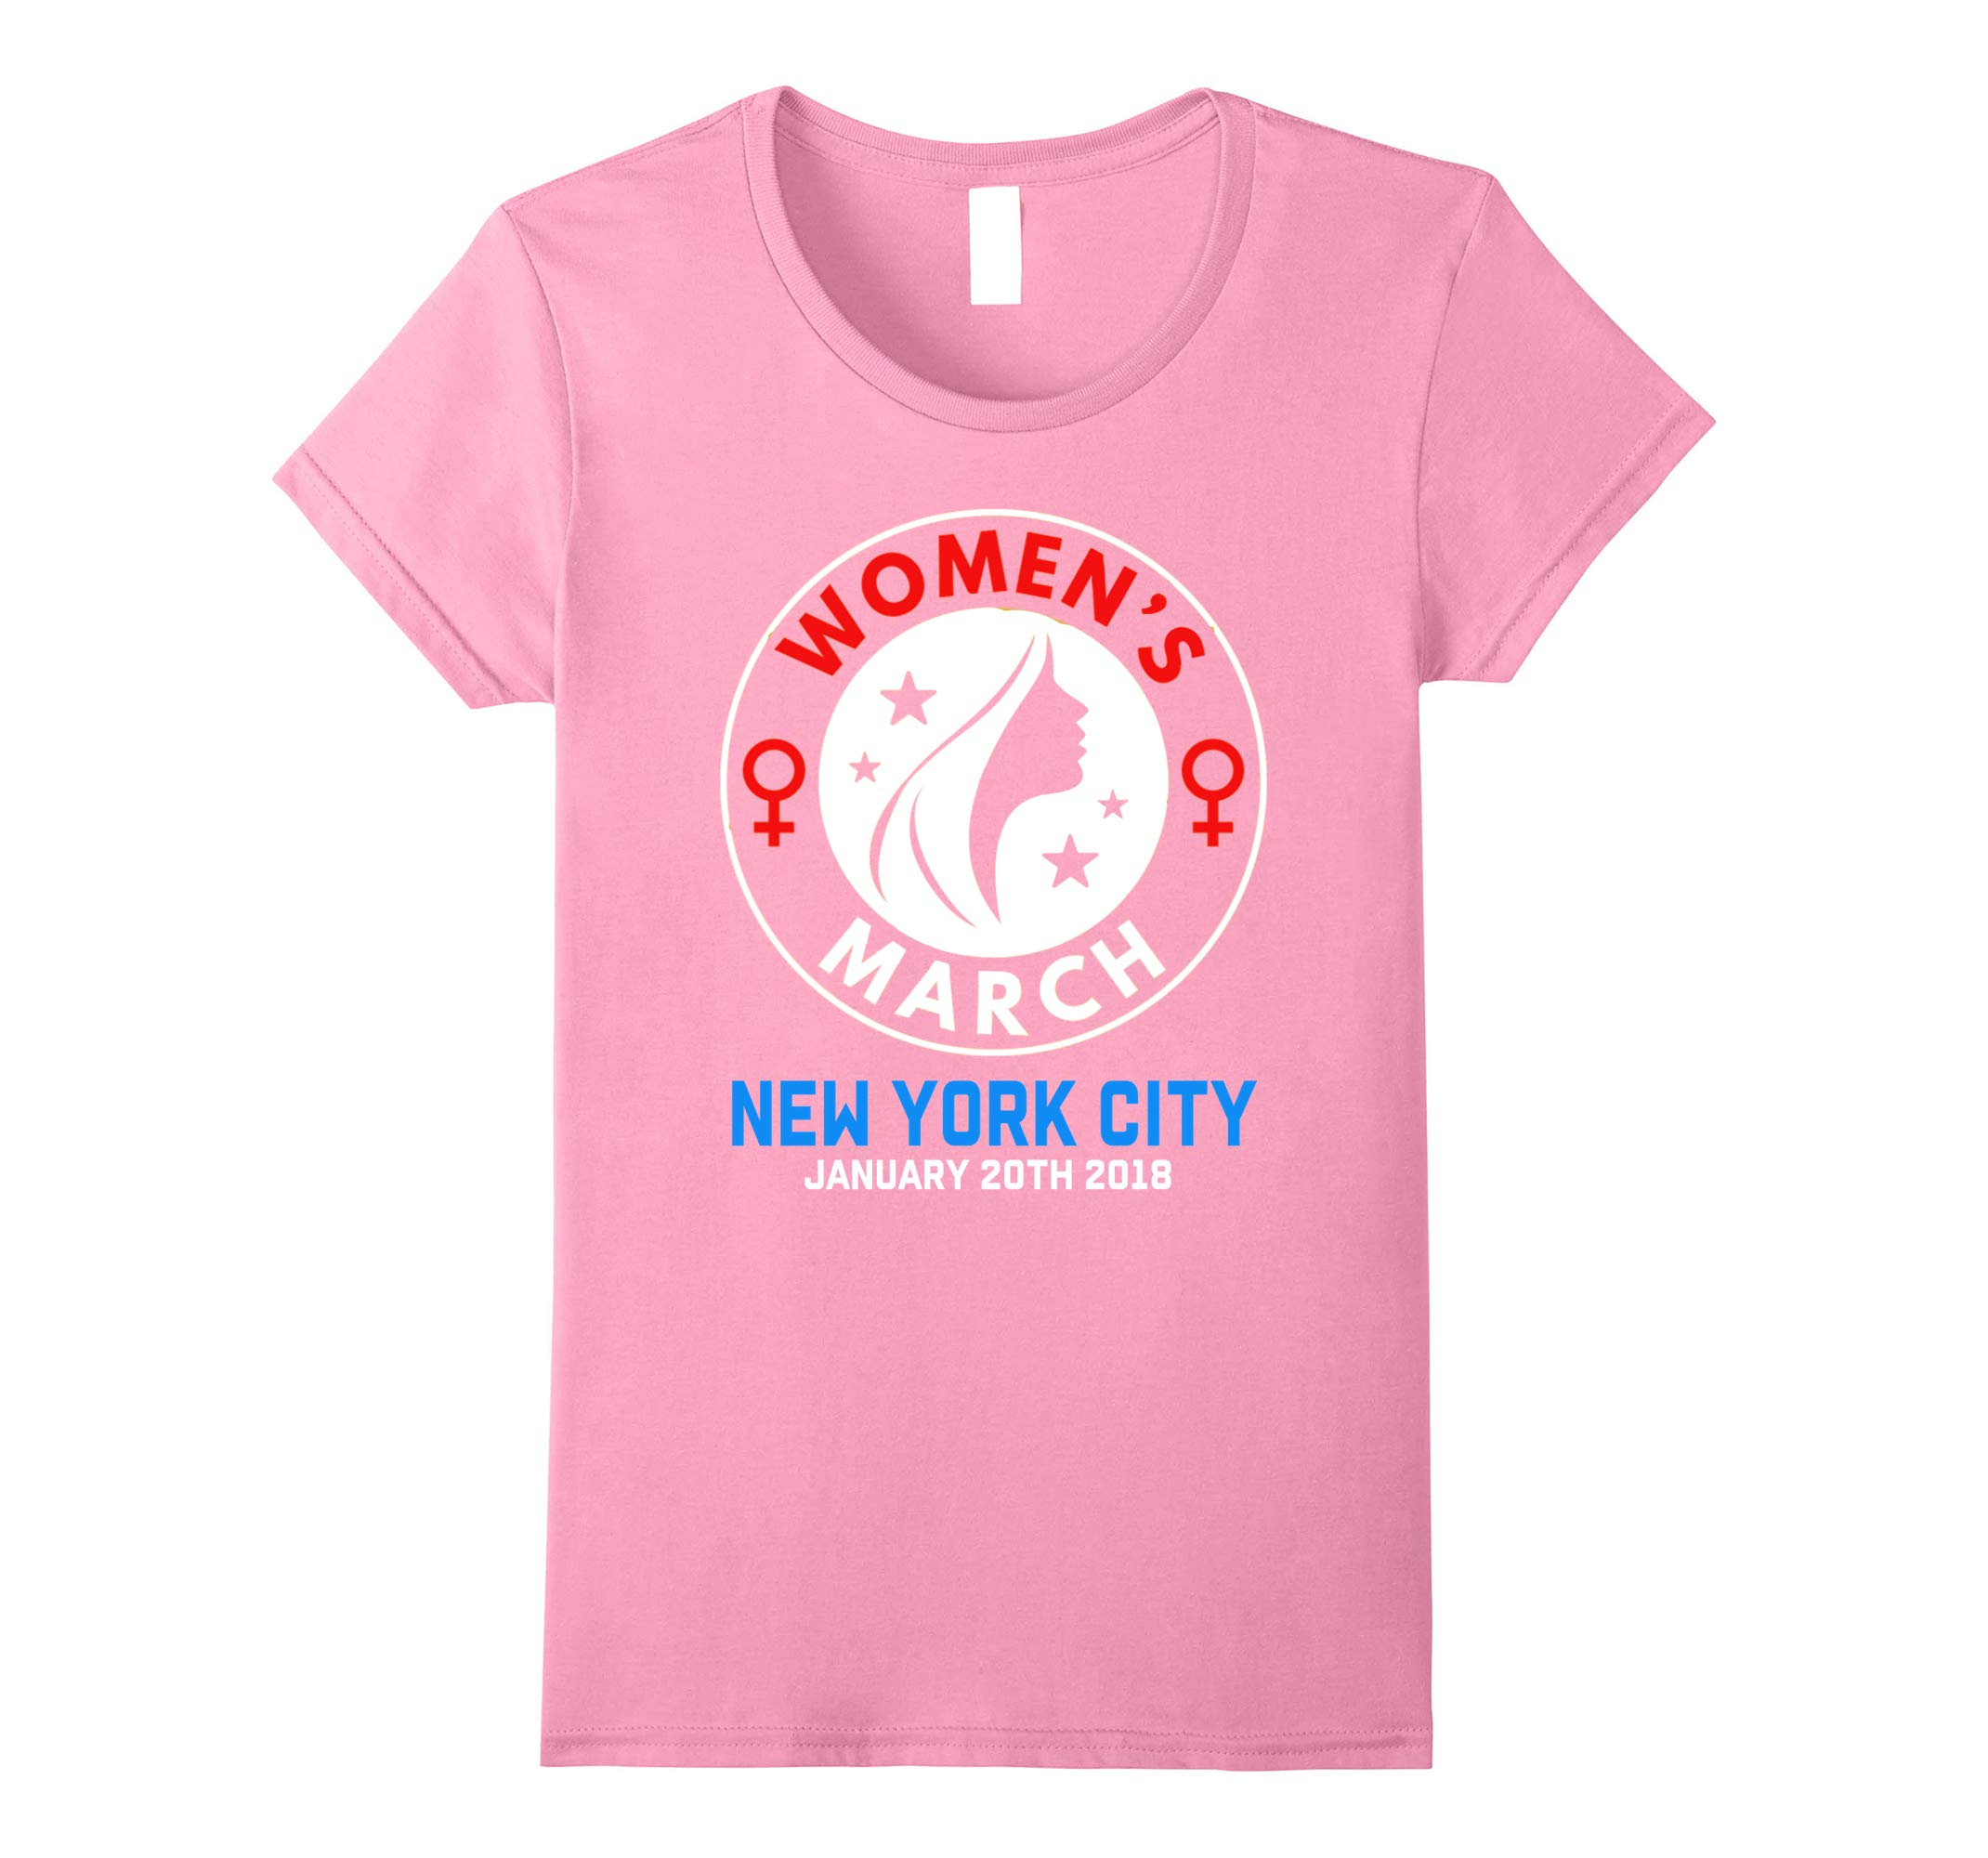 Womens Women's March New York City January 20 2018 Protest T-Shirt-RT